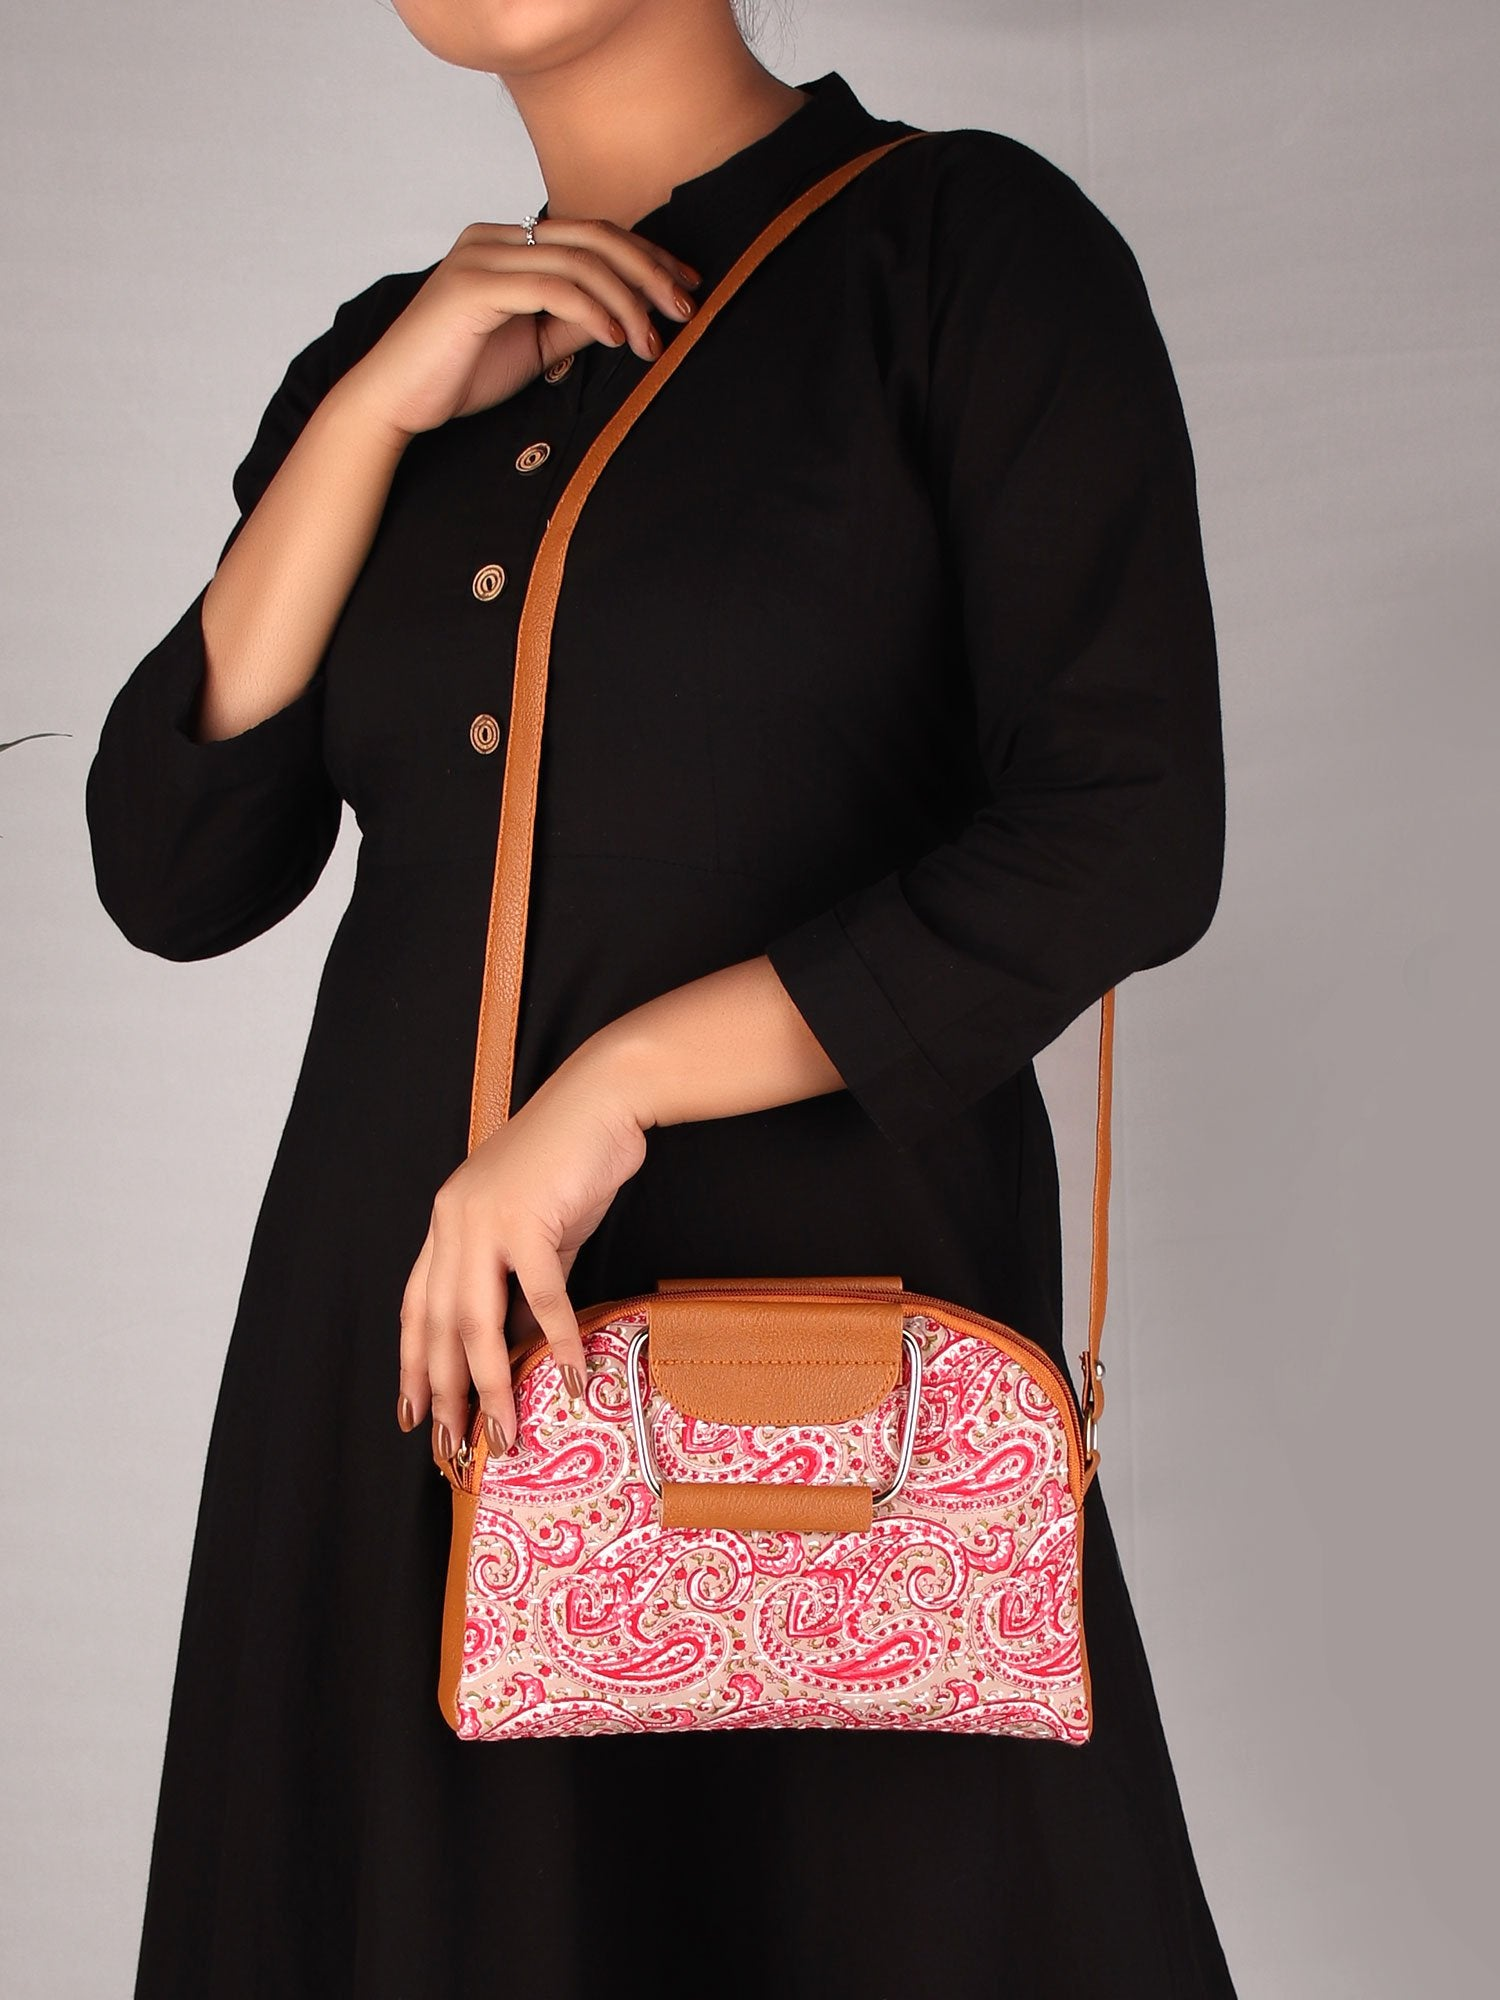 PINK PAISLEYS  STATEMENT HANDBAG